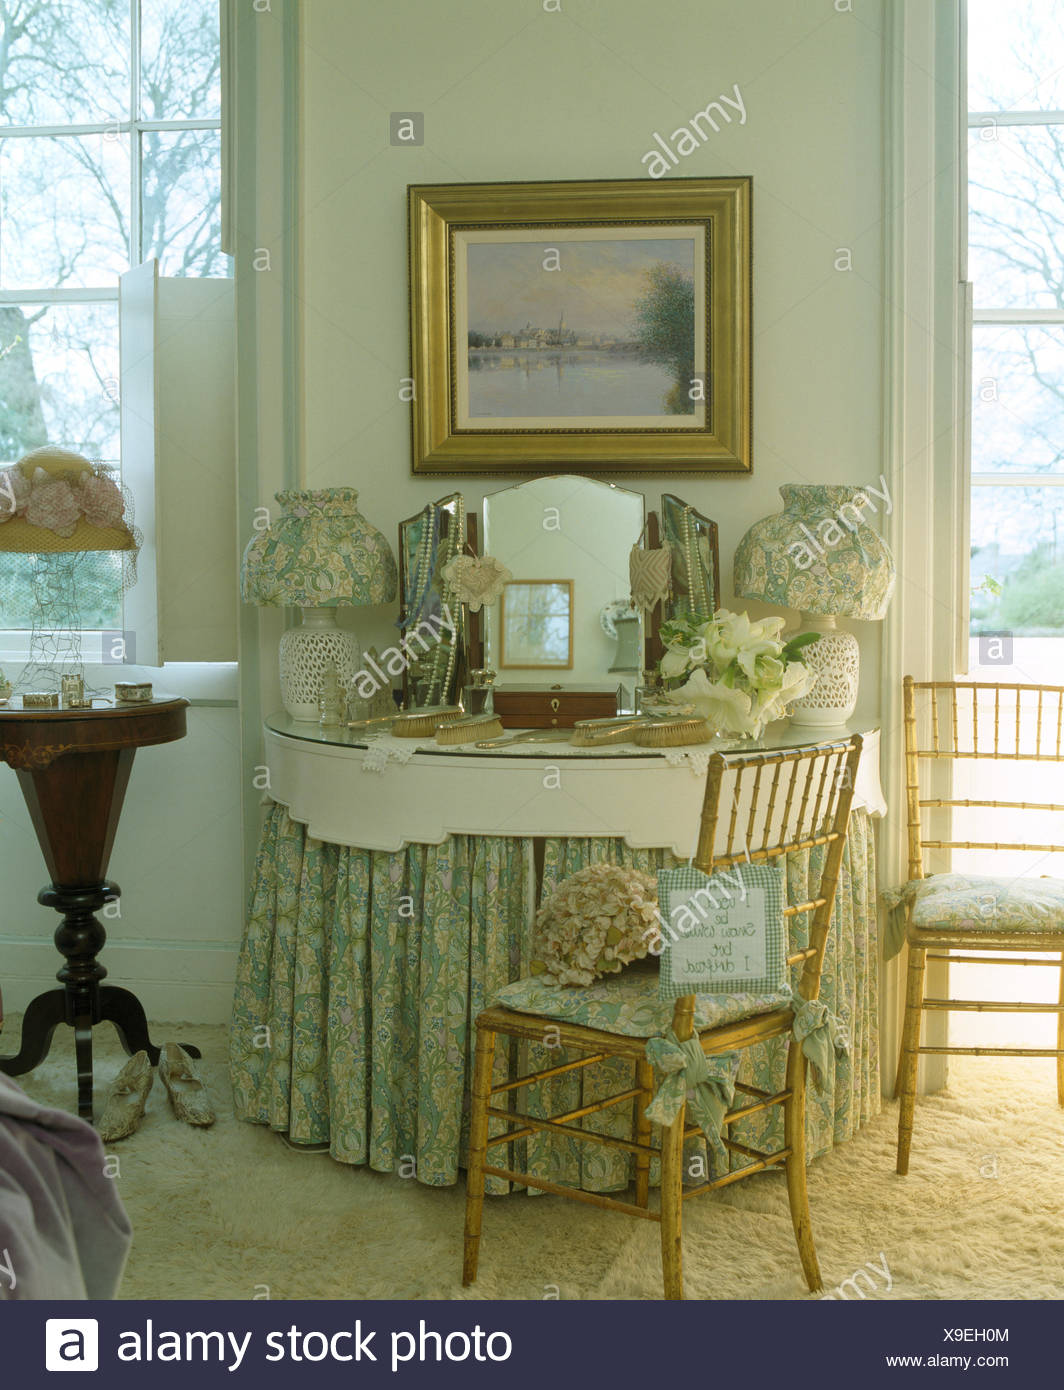 Gilt framed picture above dressing table with green+white drapes in ...